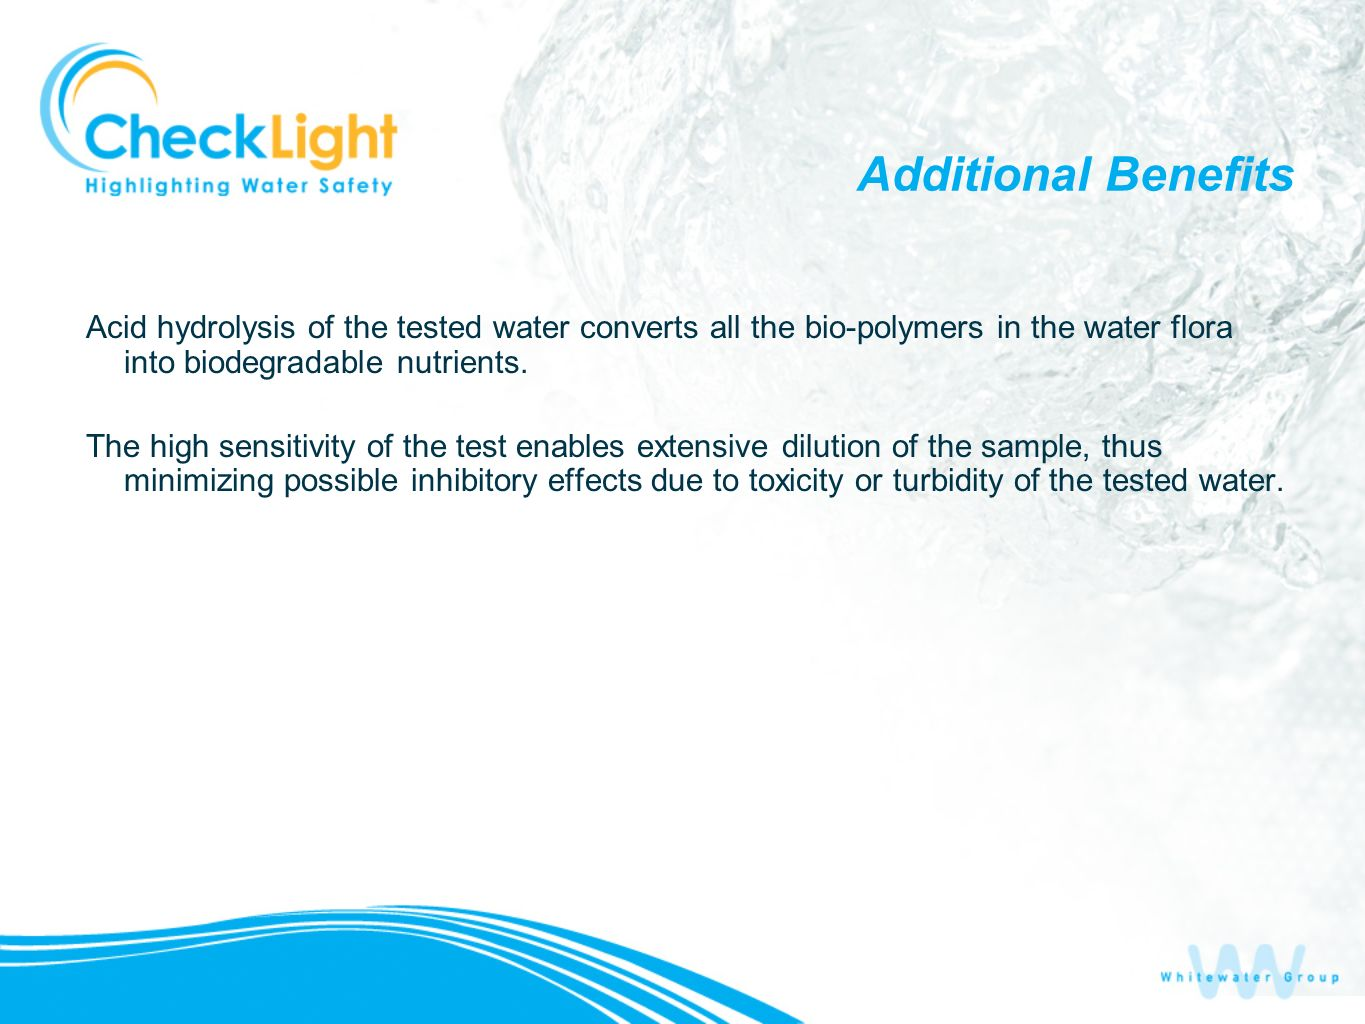 Additional Benefits Acid hydrolysis of the tested water converts all the bio-polymers in the water flora into biodegradable nutrients.